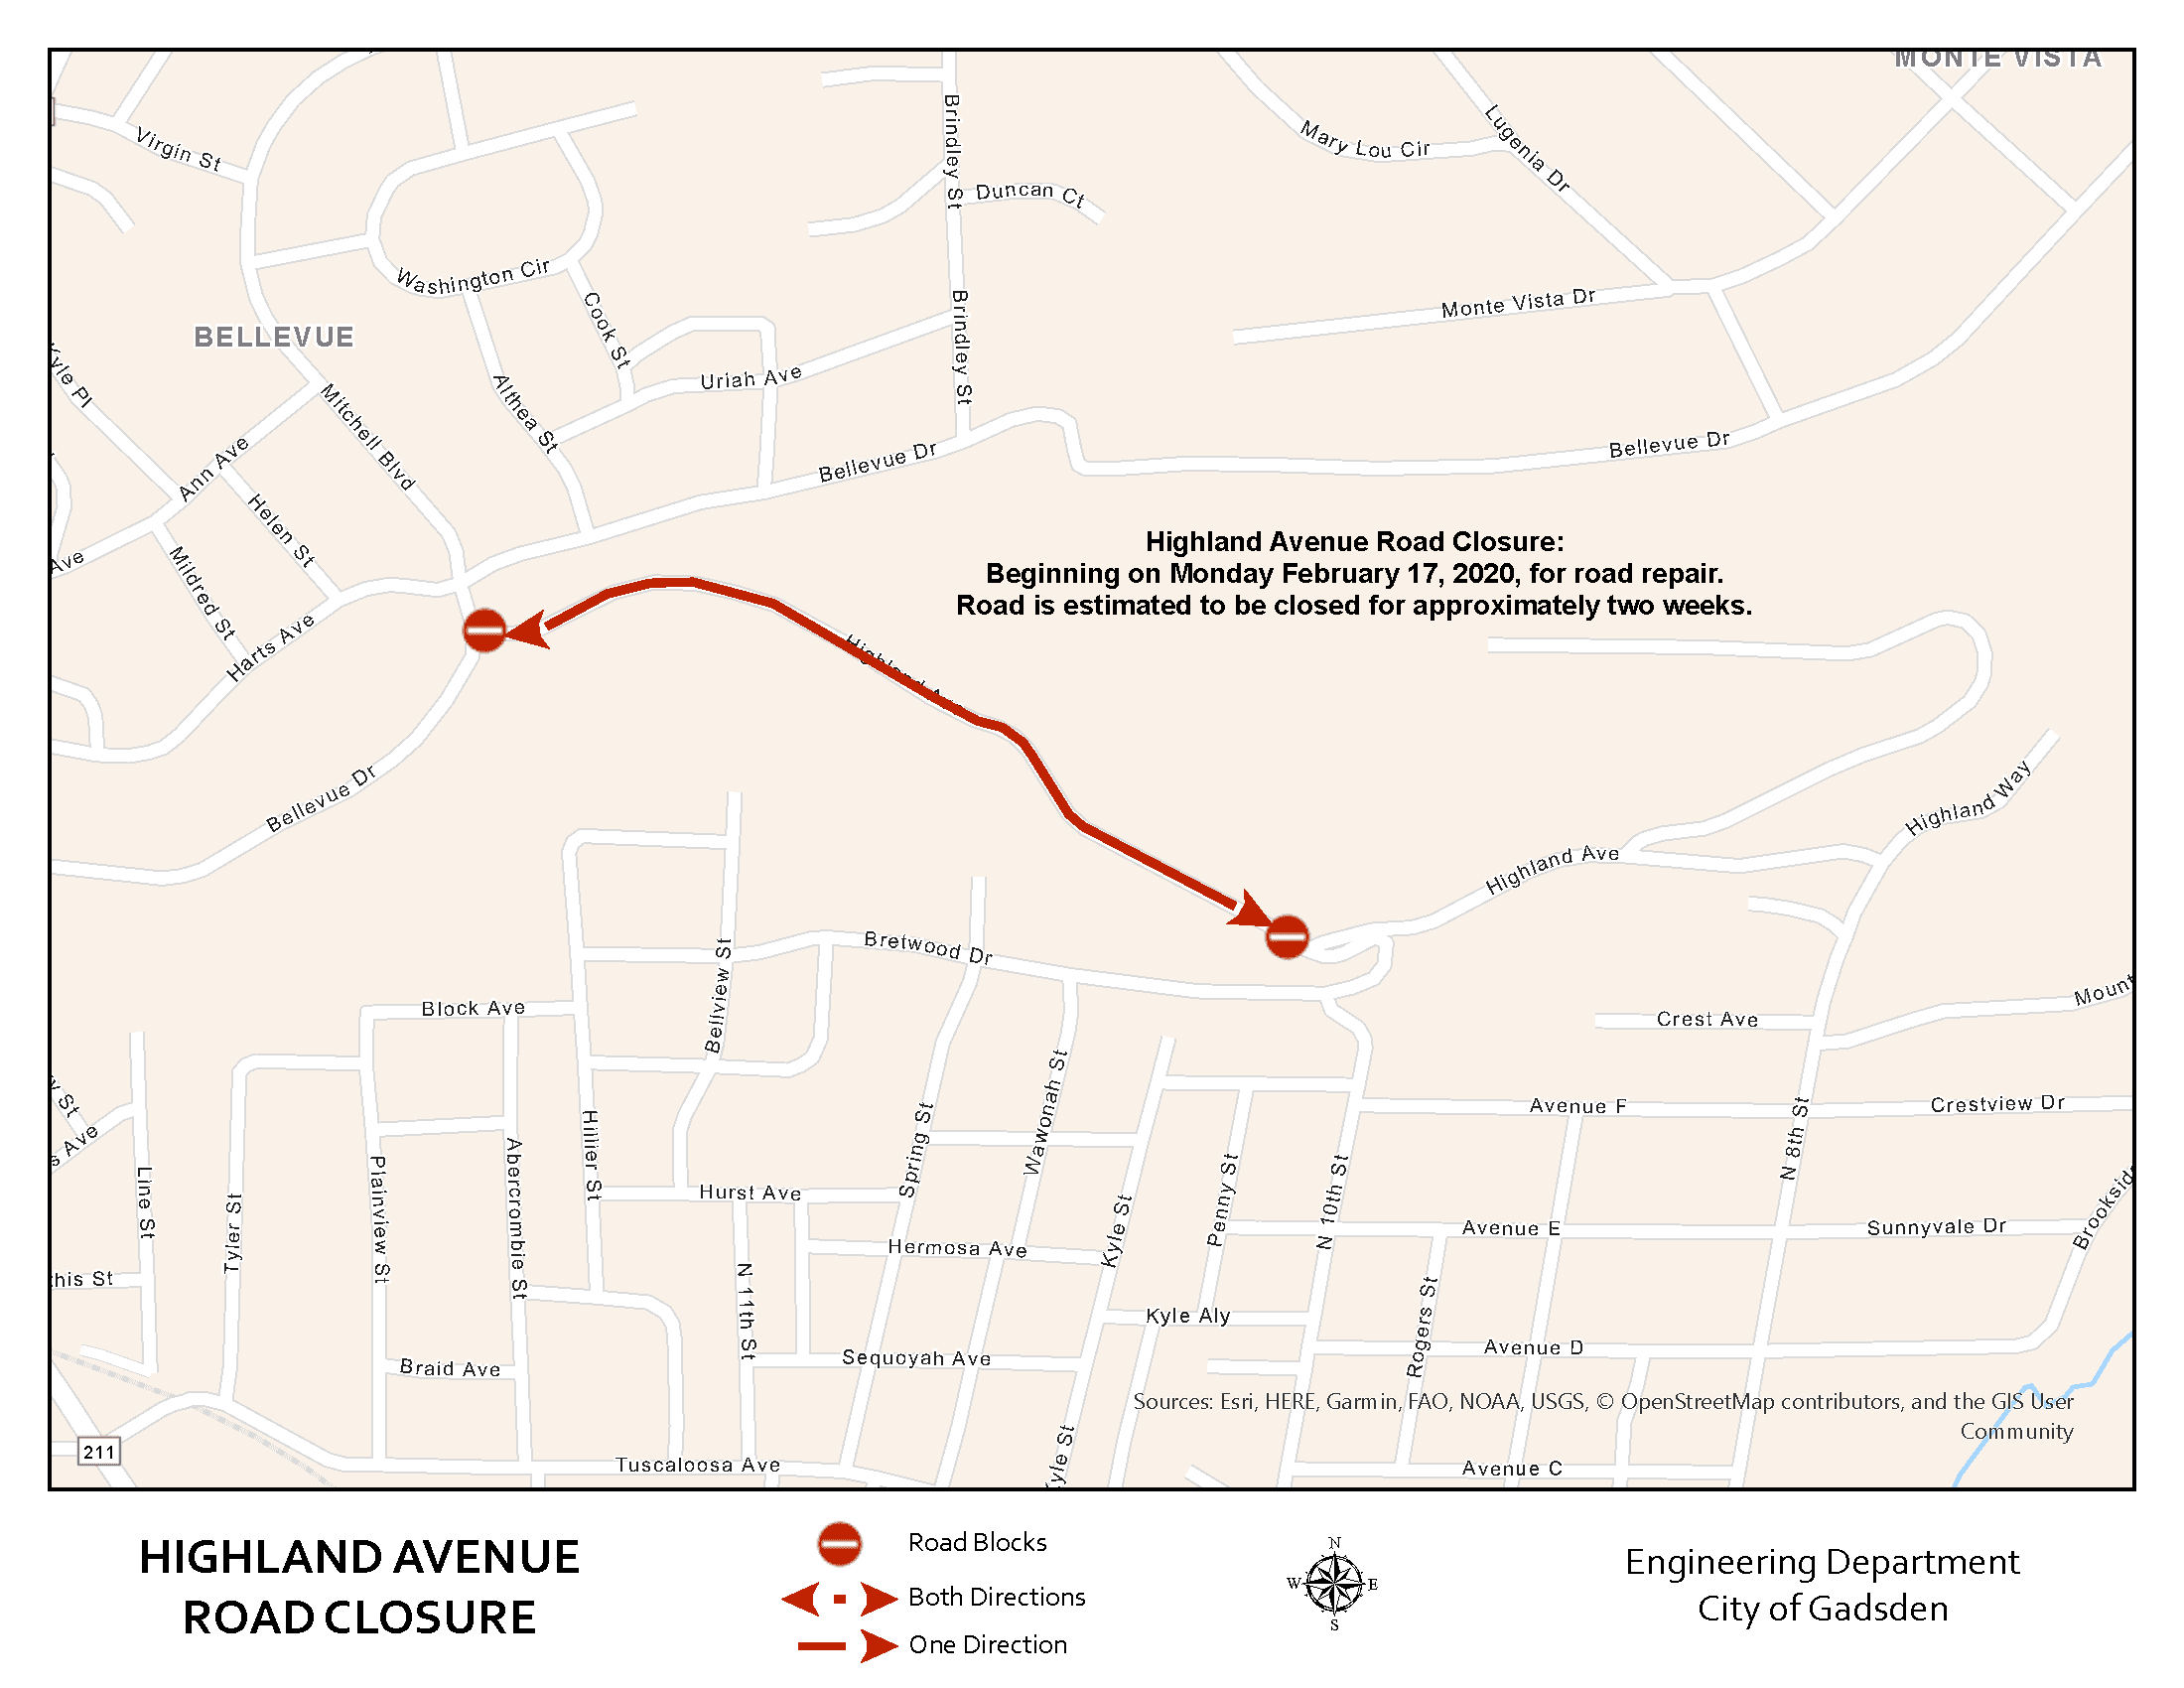 Highland Avenue Road Closure